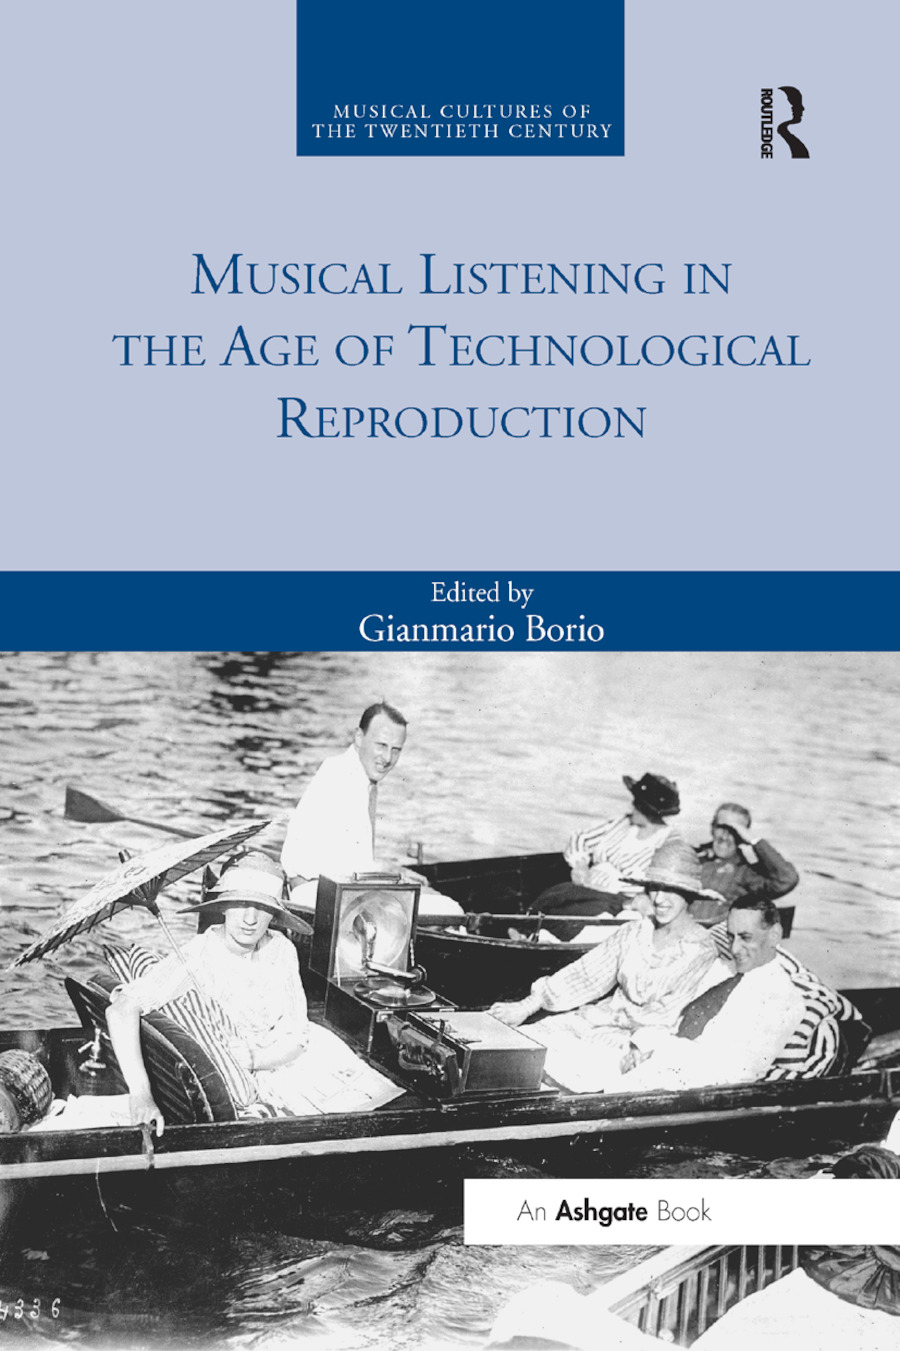 Musical Listening in the Age of Technological Reproduction